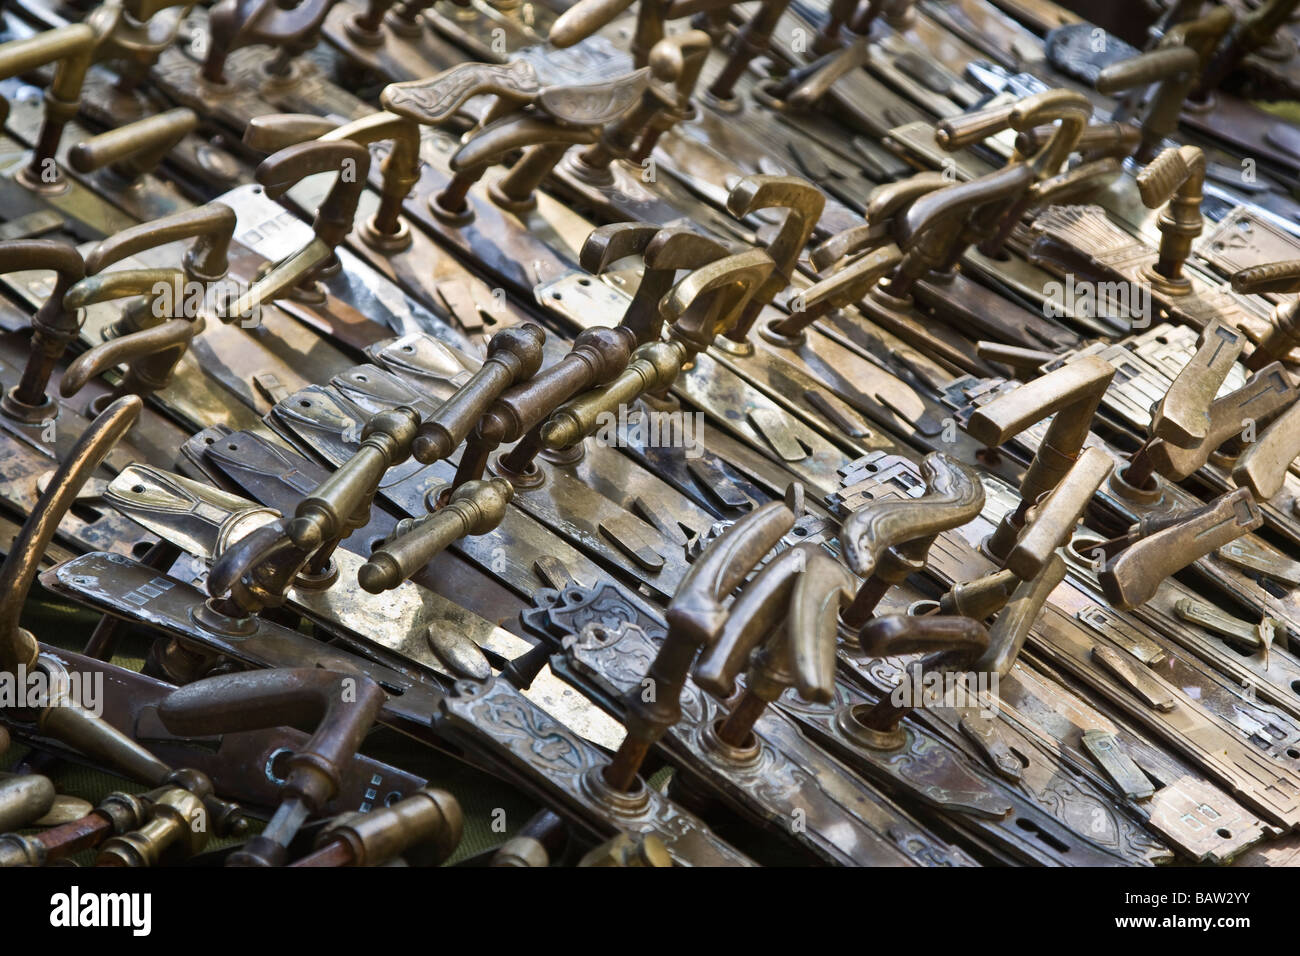 Old door handles for sale Stock Photo, Royalty Free Image ...